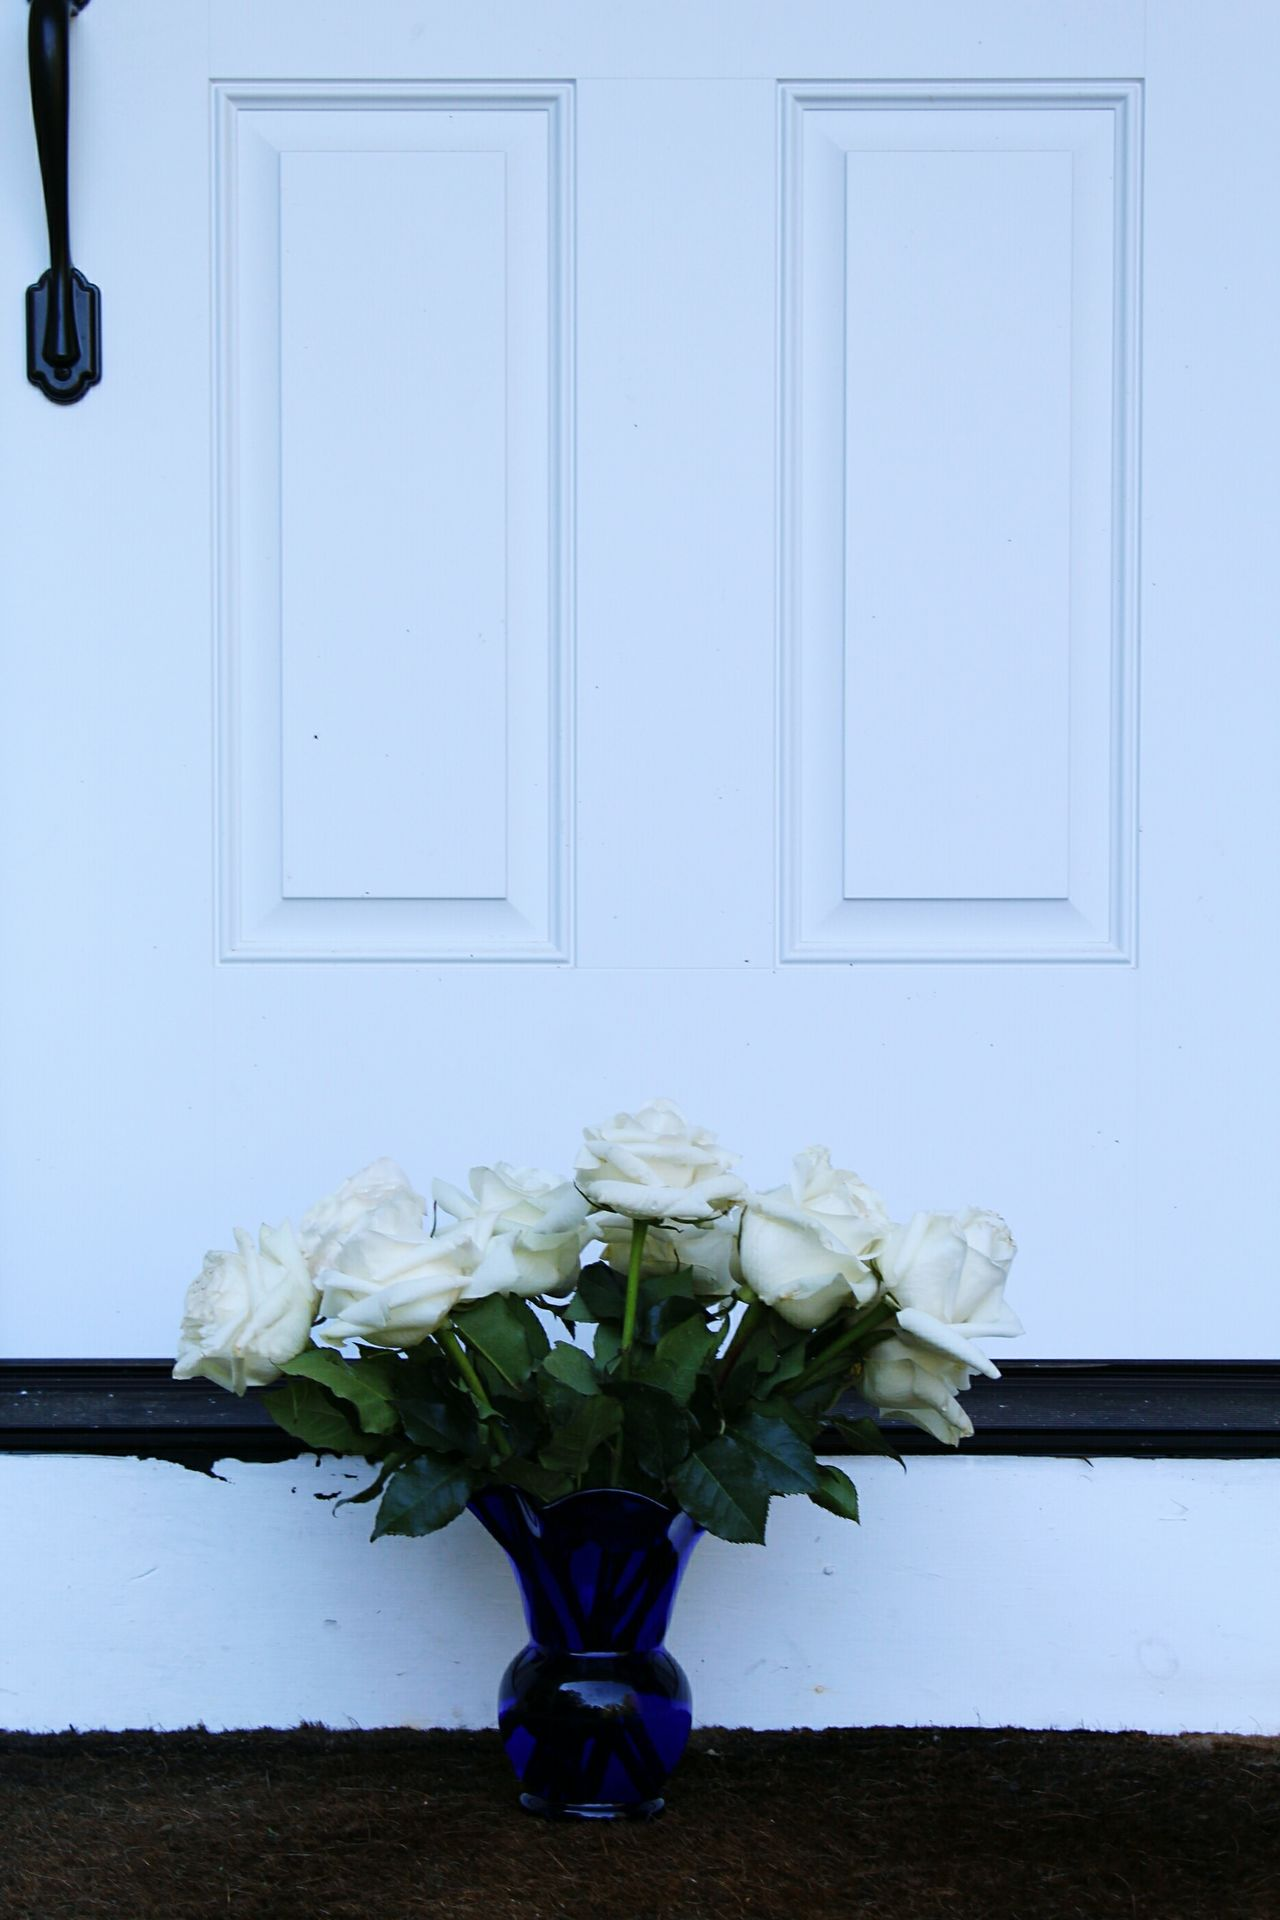 Home Is Where The Art Is Floral Rose Bouquet White Roses White White Album White On White Roses Front Door Delivery Special Delivery White Color White Rose Bouquet Of Roses Roses At Front Door EyeEm Masterclass Flowerporn Traveling Home For The Holidays Home Sweet Home Still Life Welcome Mat Blue Vase And Flowers Flowers At Door Flower Delievery Special Occasion